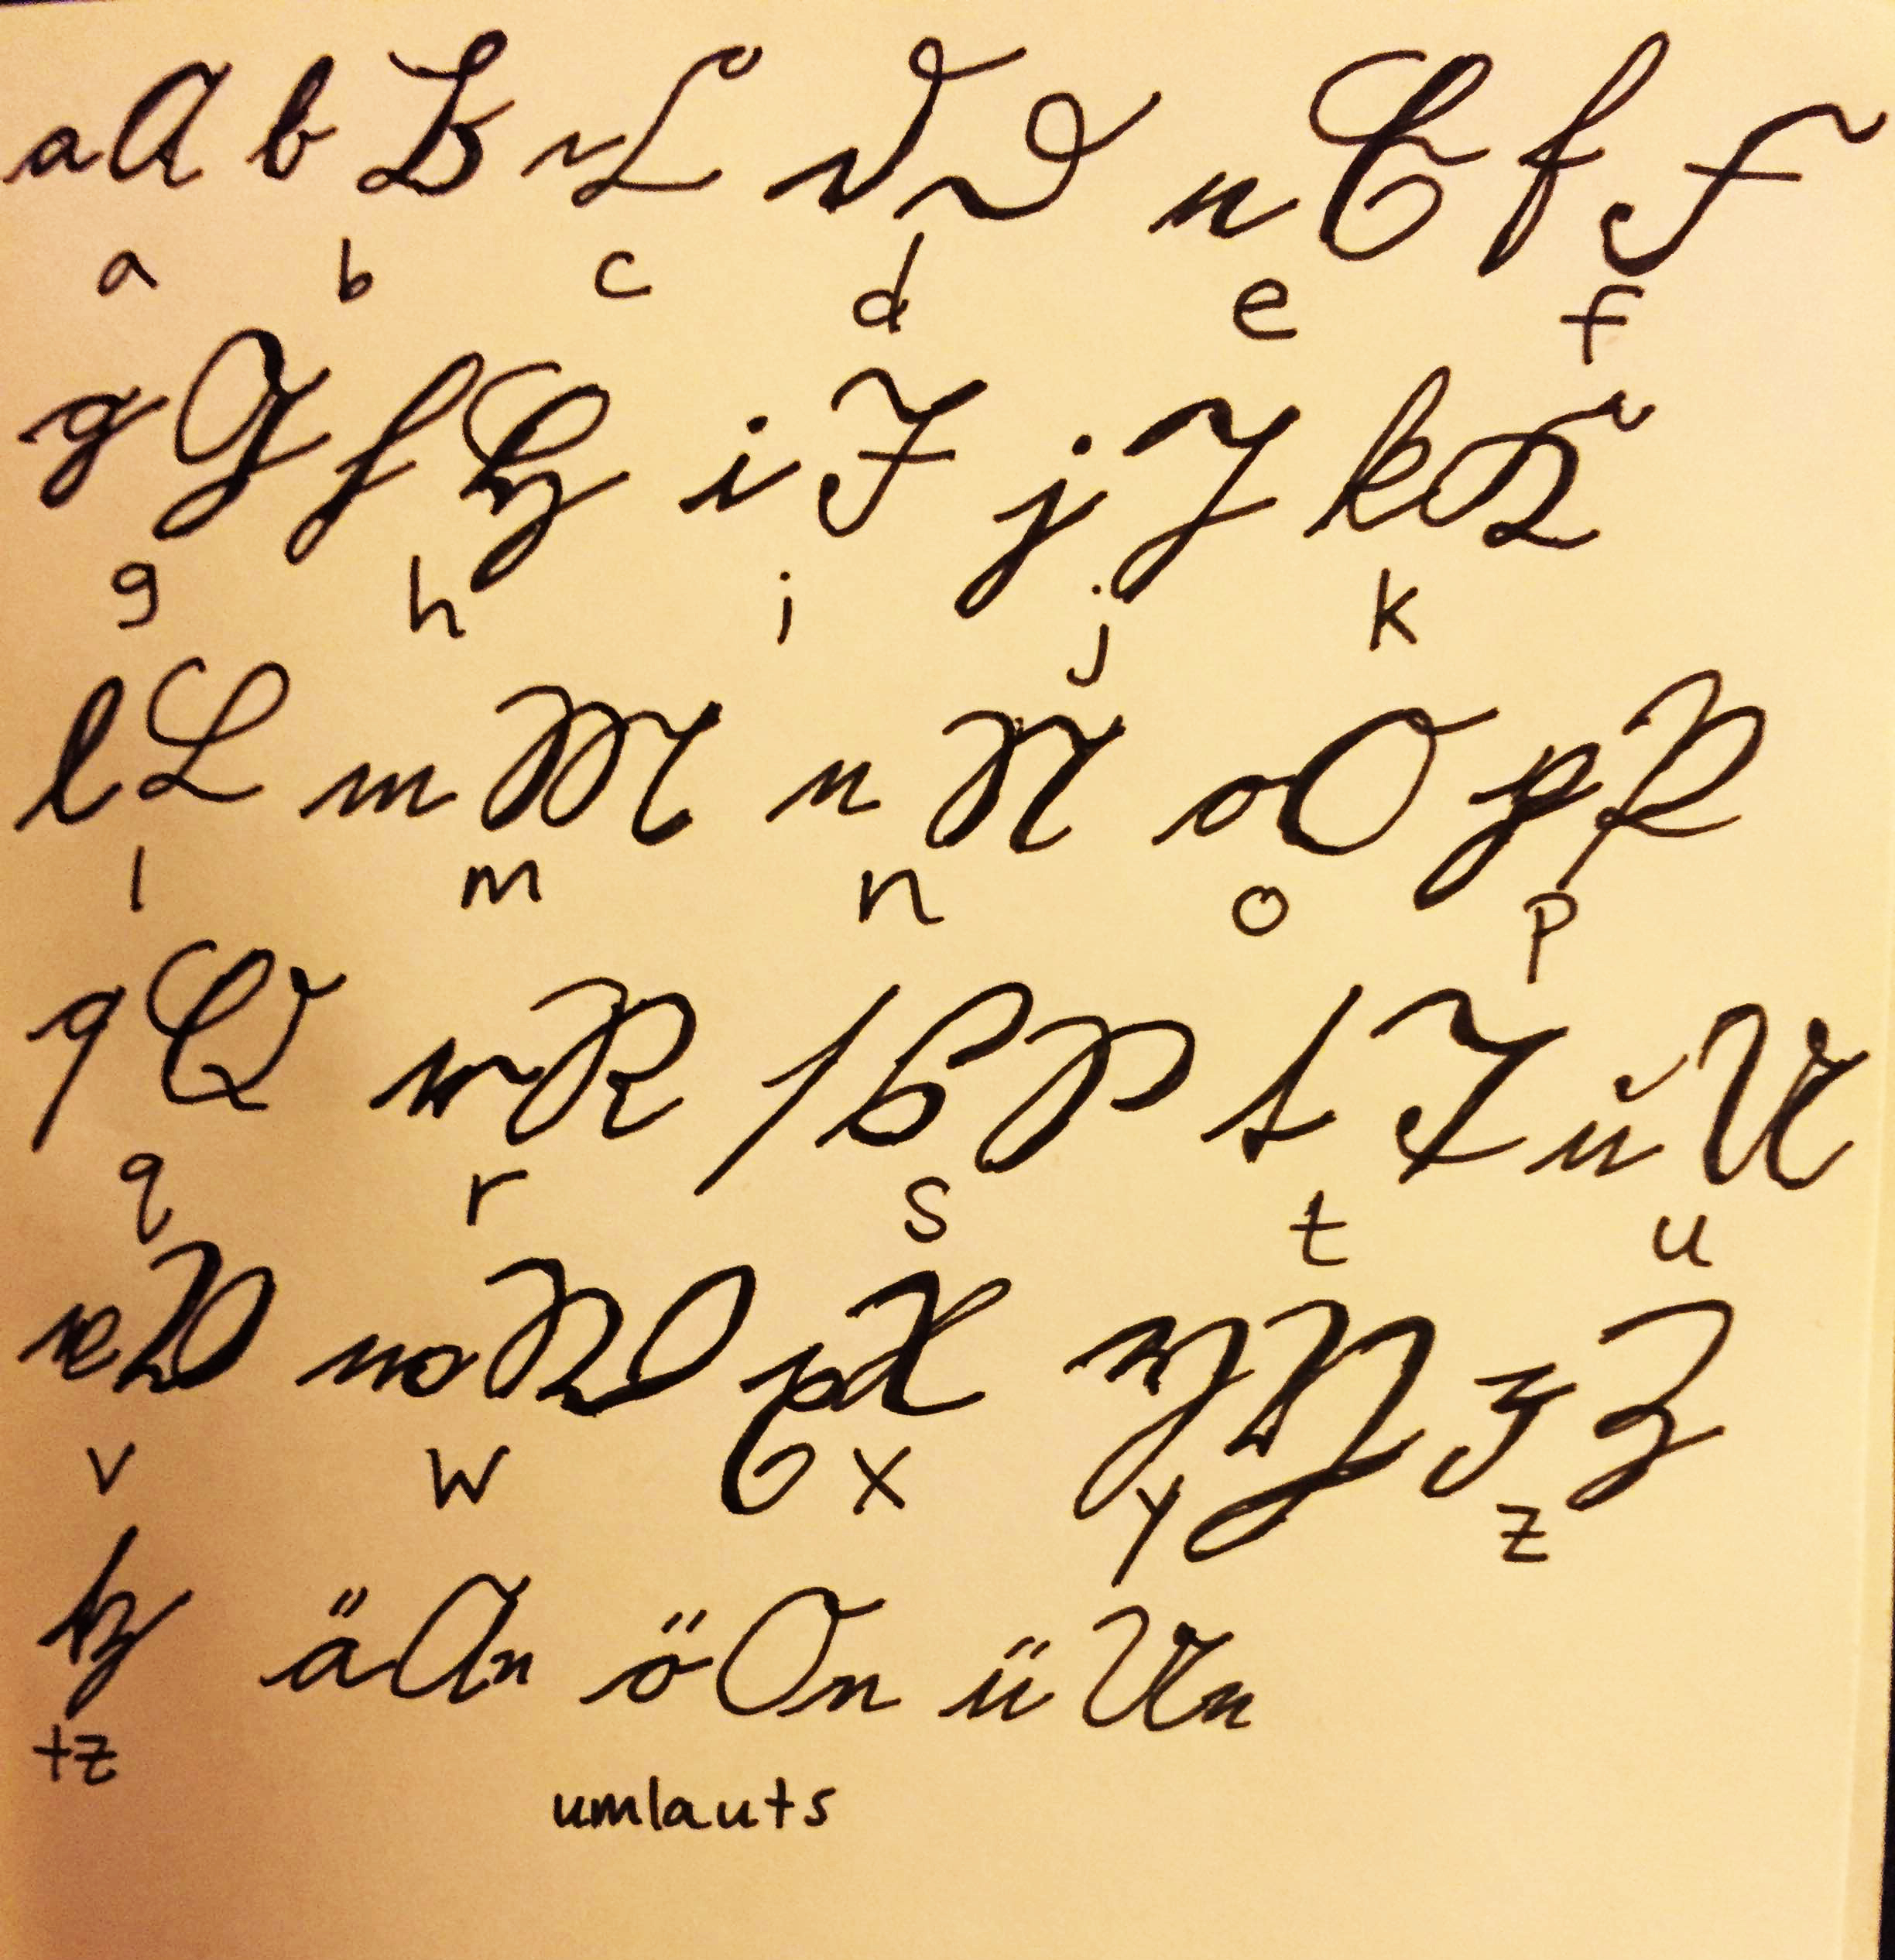 Kurrentschrift:German in medieval style handwriting, this particular style circa 1865